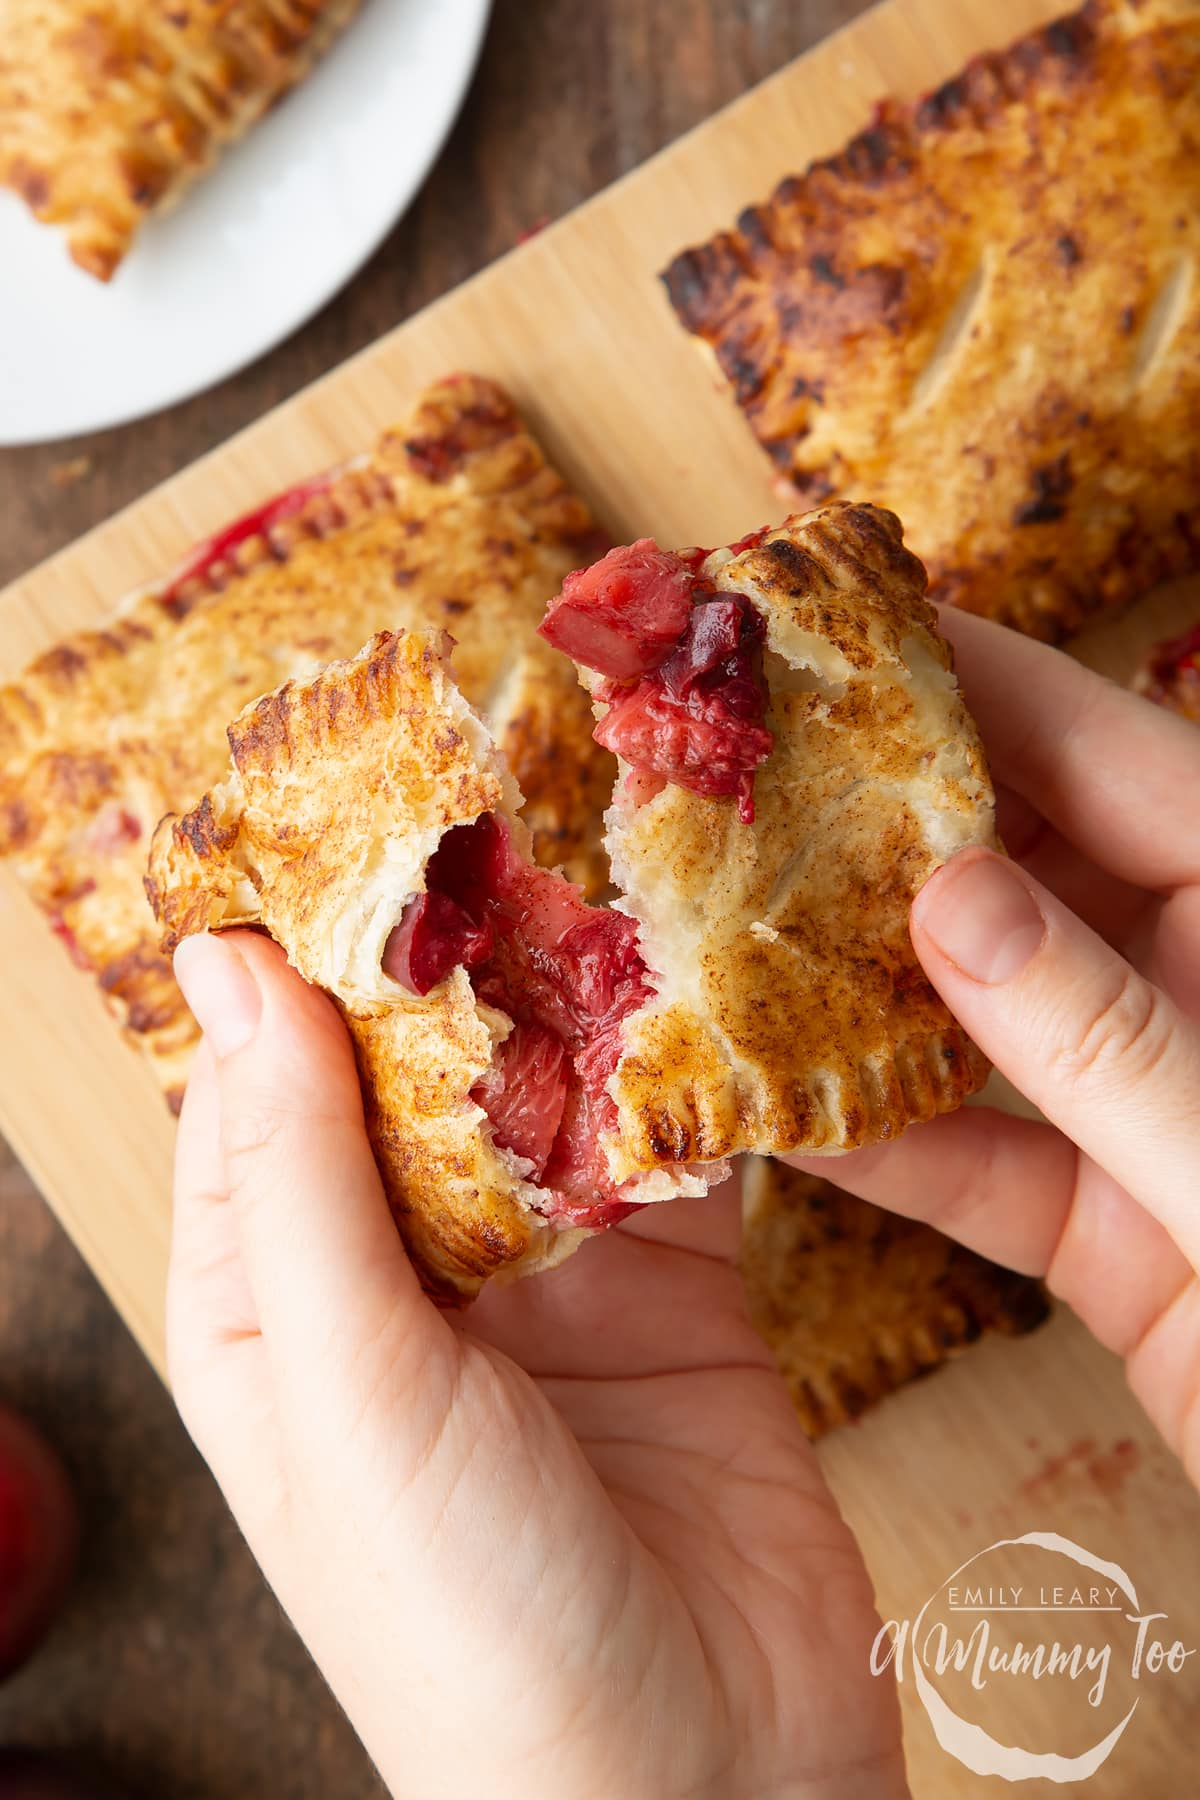 Two hands holding a plum pastry. It is broke open, showing the filling inside. More pastries are shown on a board in the background.